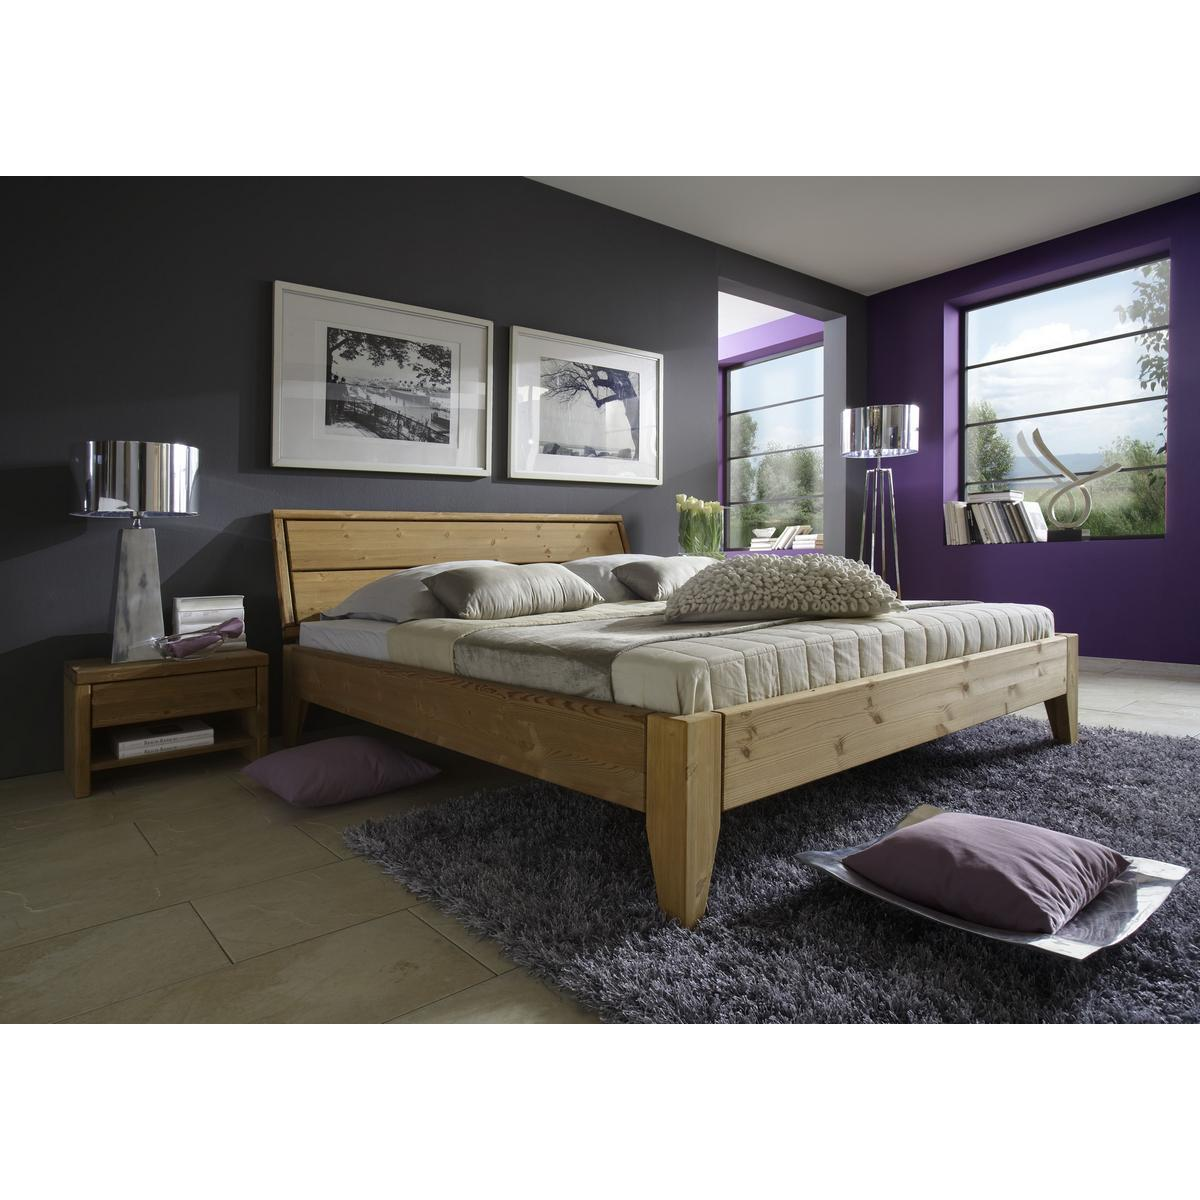 massivholz bett 200x200 easy sleep kiefer massiv gelaugt. Black Bedroom Furniture Sets. Home Design Ideas